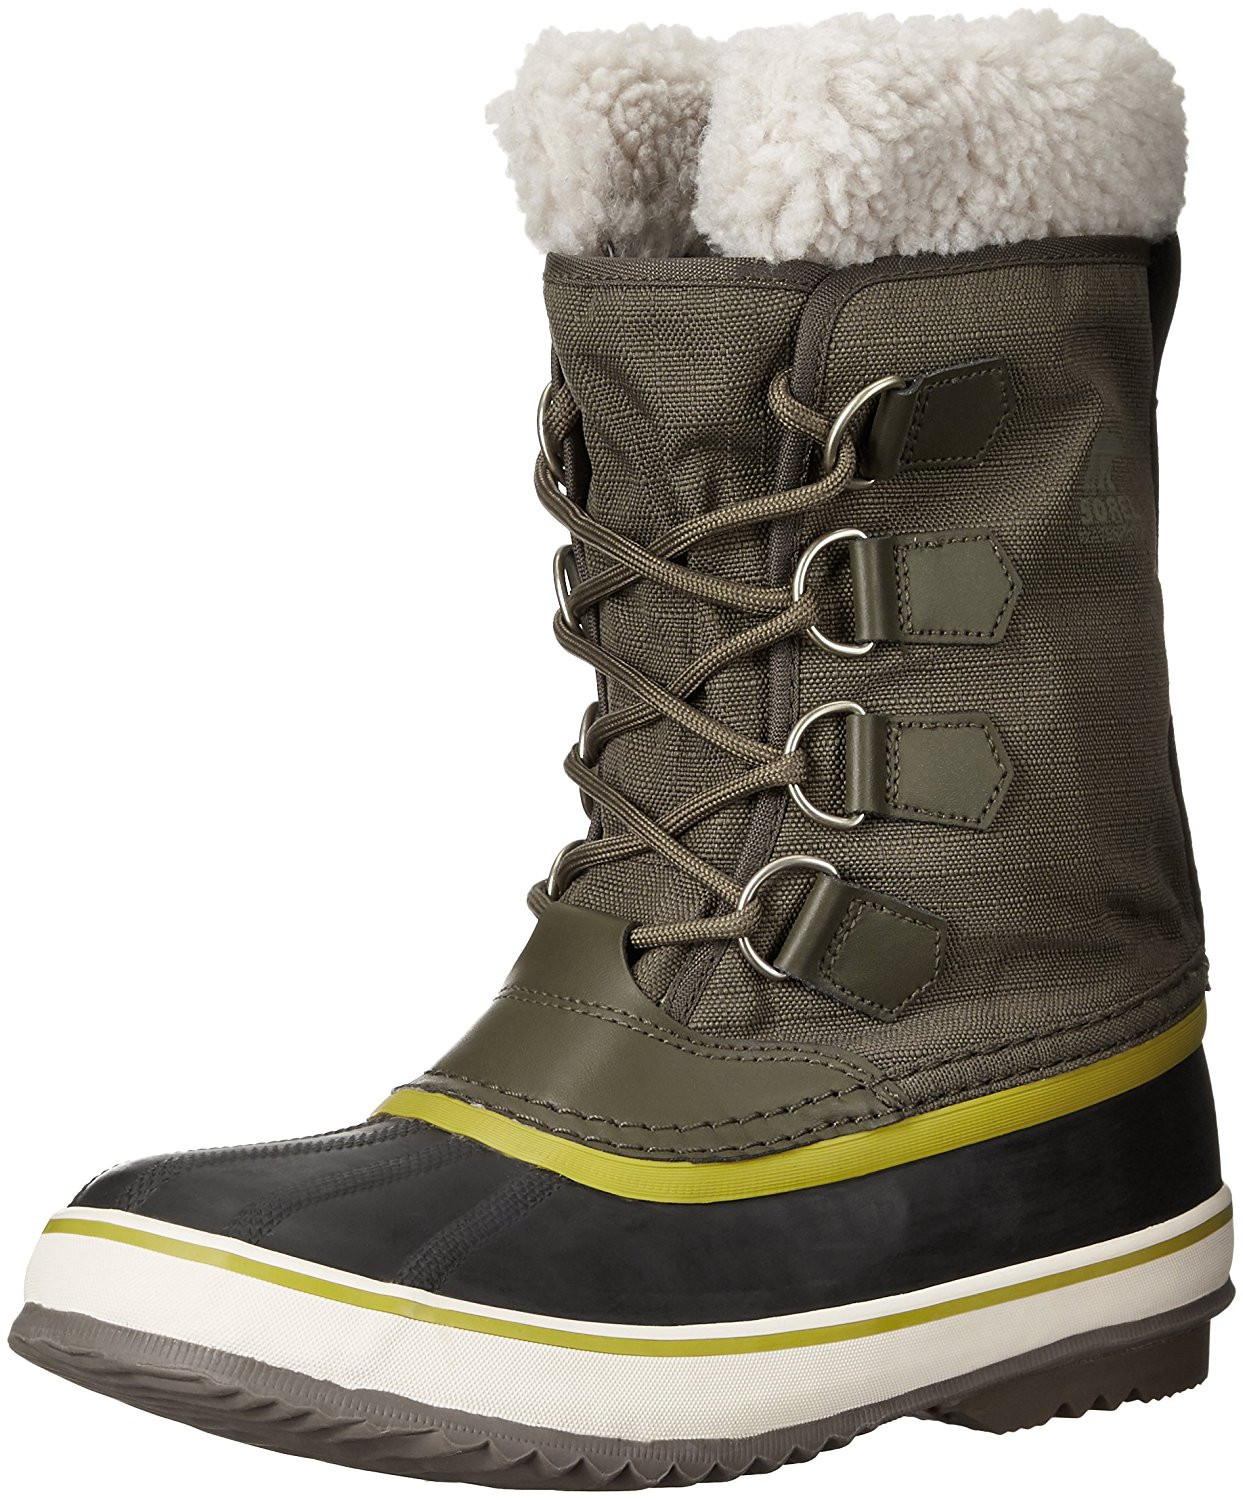 32b0bd529b43 Get Quotations · Womens Sorel Winter Carnival Winter Warm Thermal Calf  Waterproof Boots